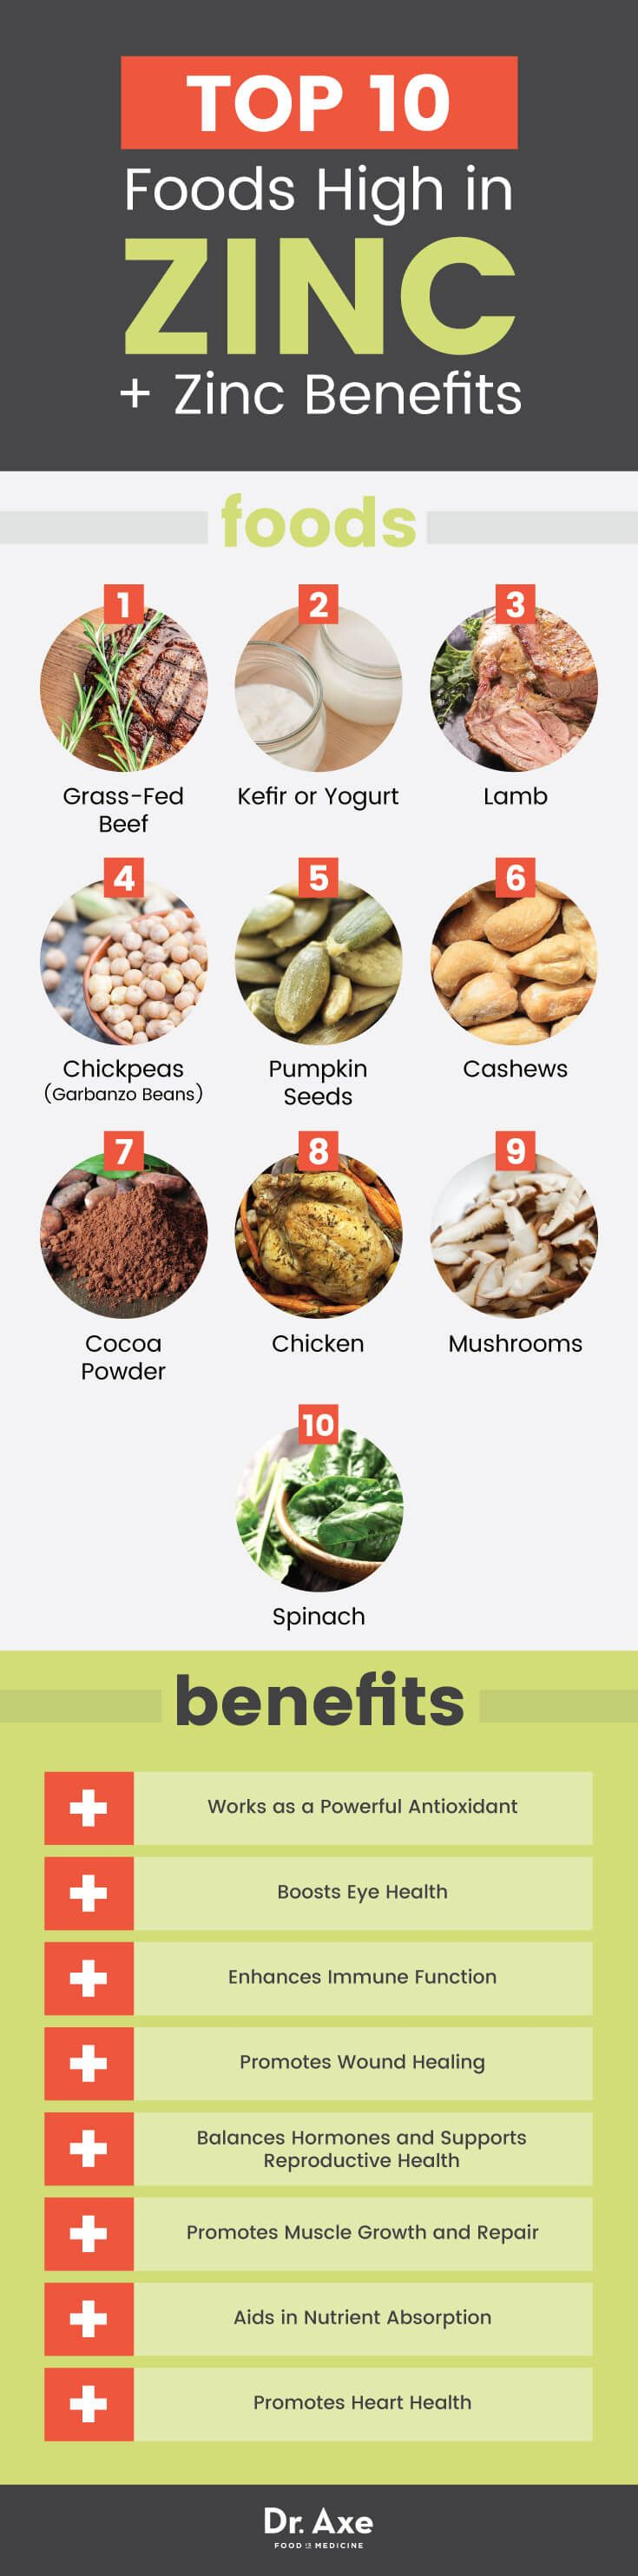 Top 15 Foods High in Zinc and Their Health Benefits ...